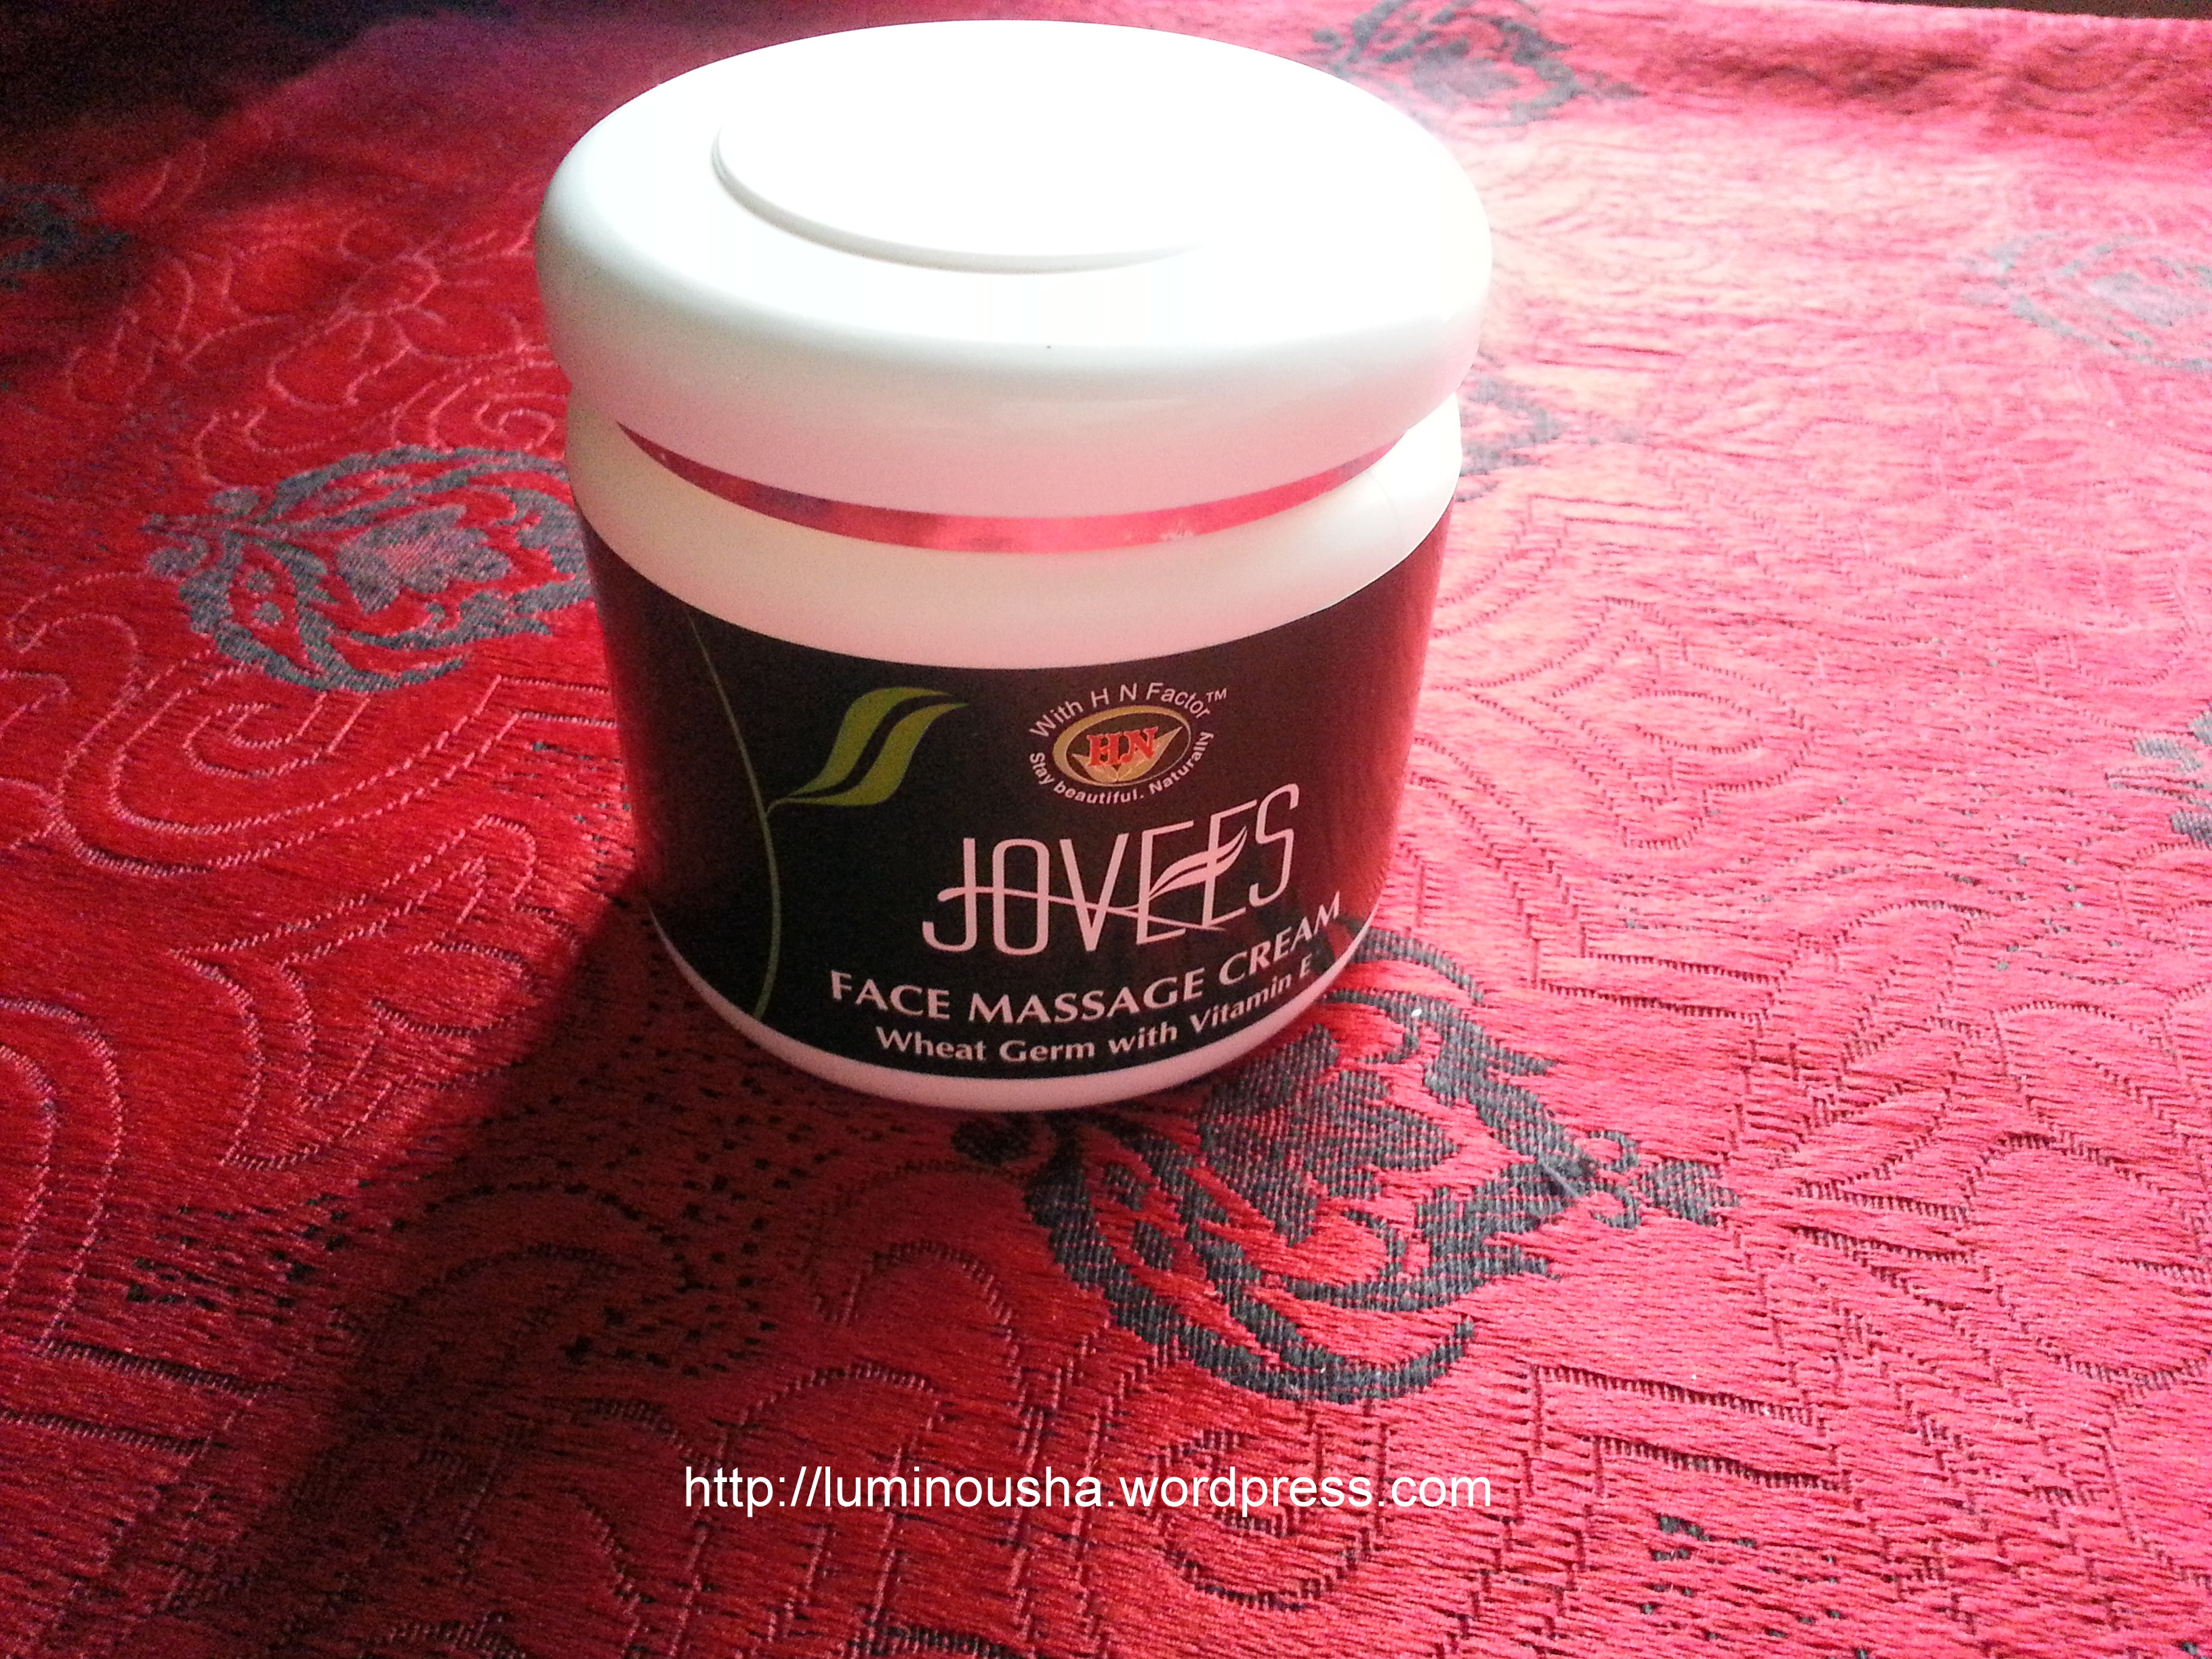 The murder of teena brandon crime scene photos